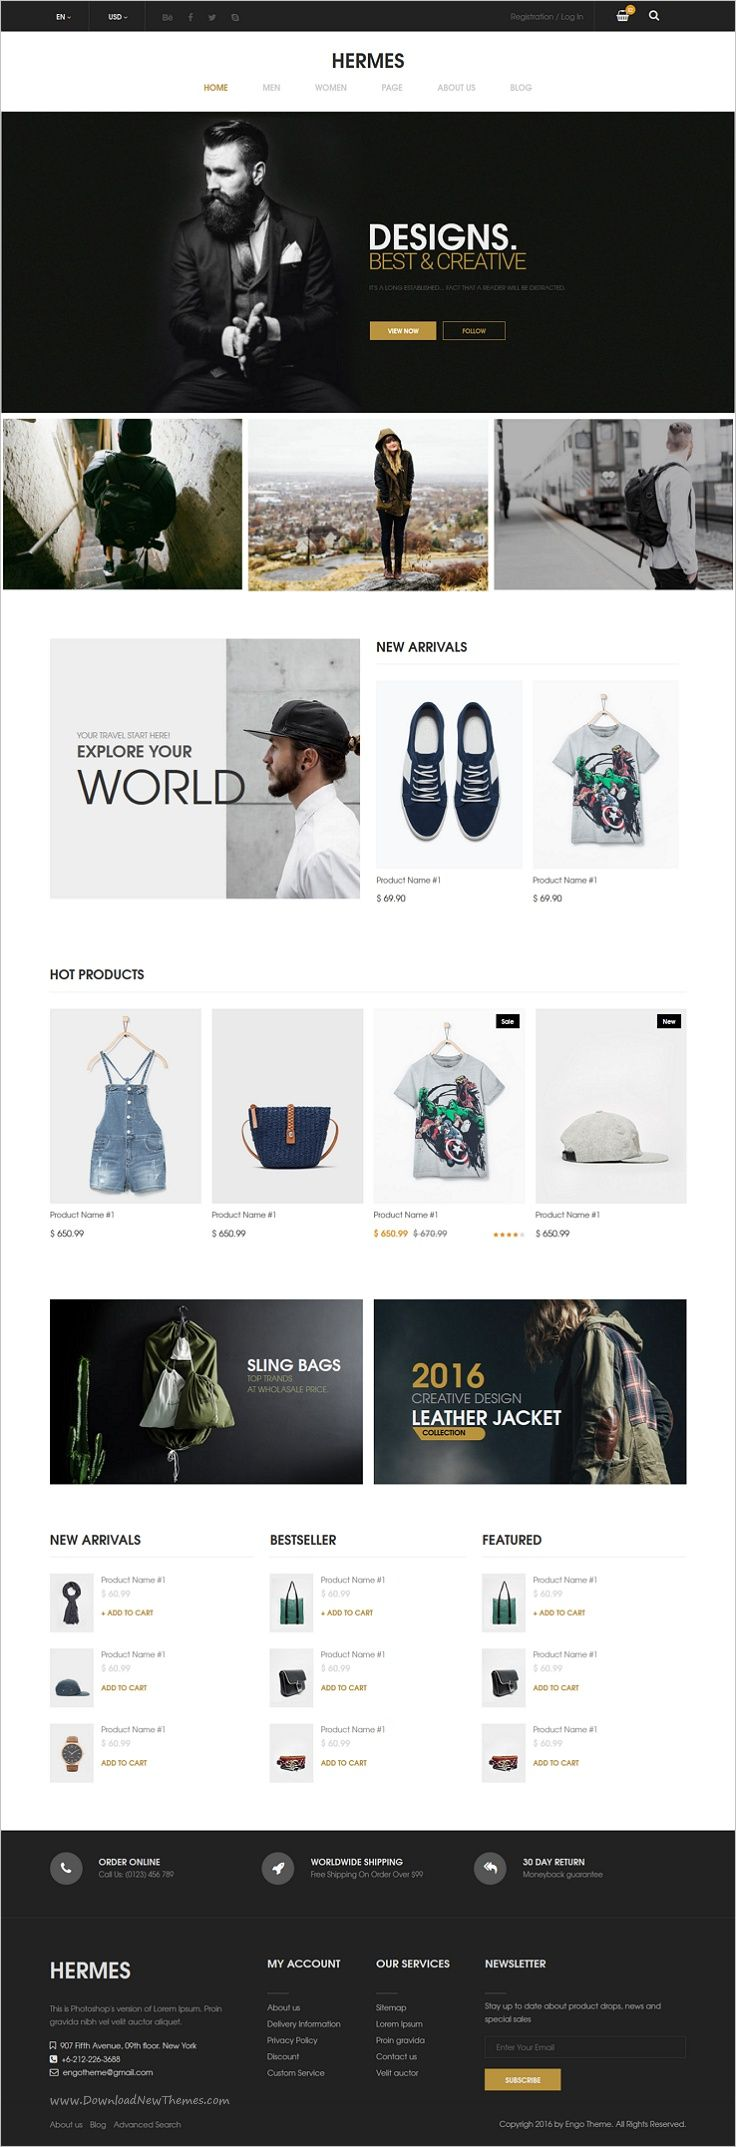 Hearmes is a modern and elegant design #Bootstrap #template for multipurpose #eCommerce website with 7 stunning homepage layouts download now➯ https://themeforest.net/item/hermes-multi-store-responsive-html-template/17108951?ref=Datasata